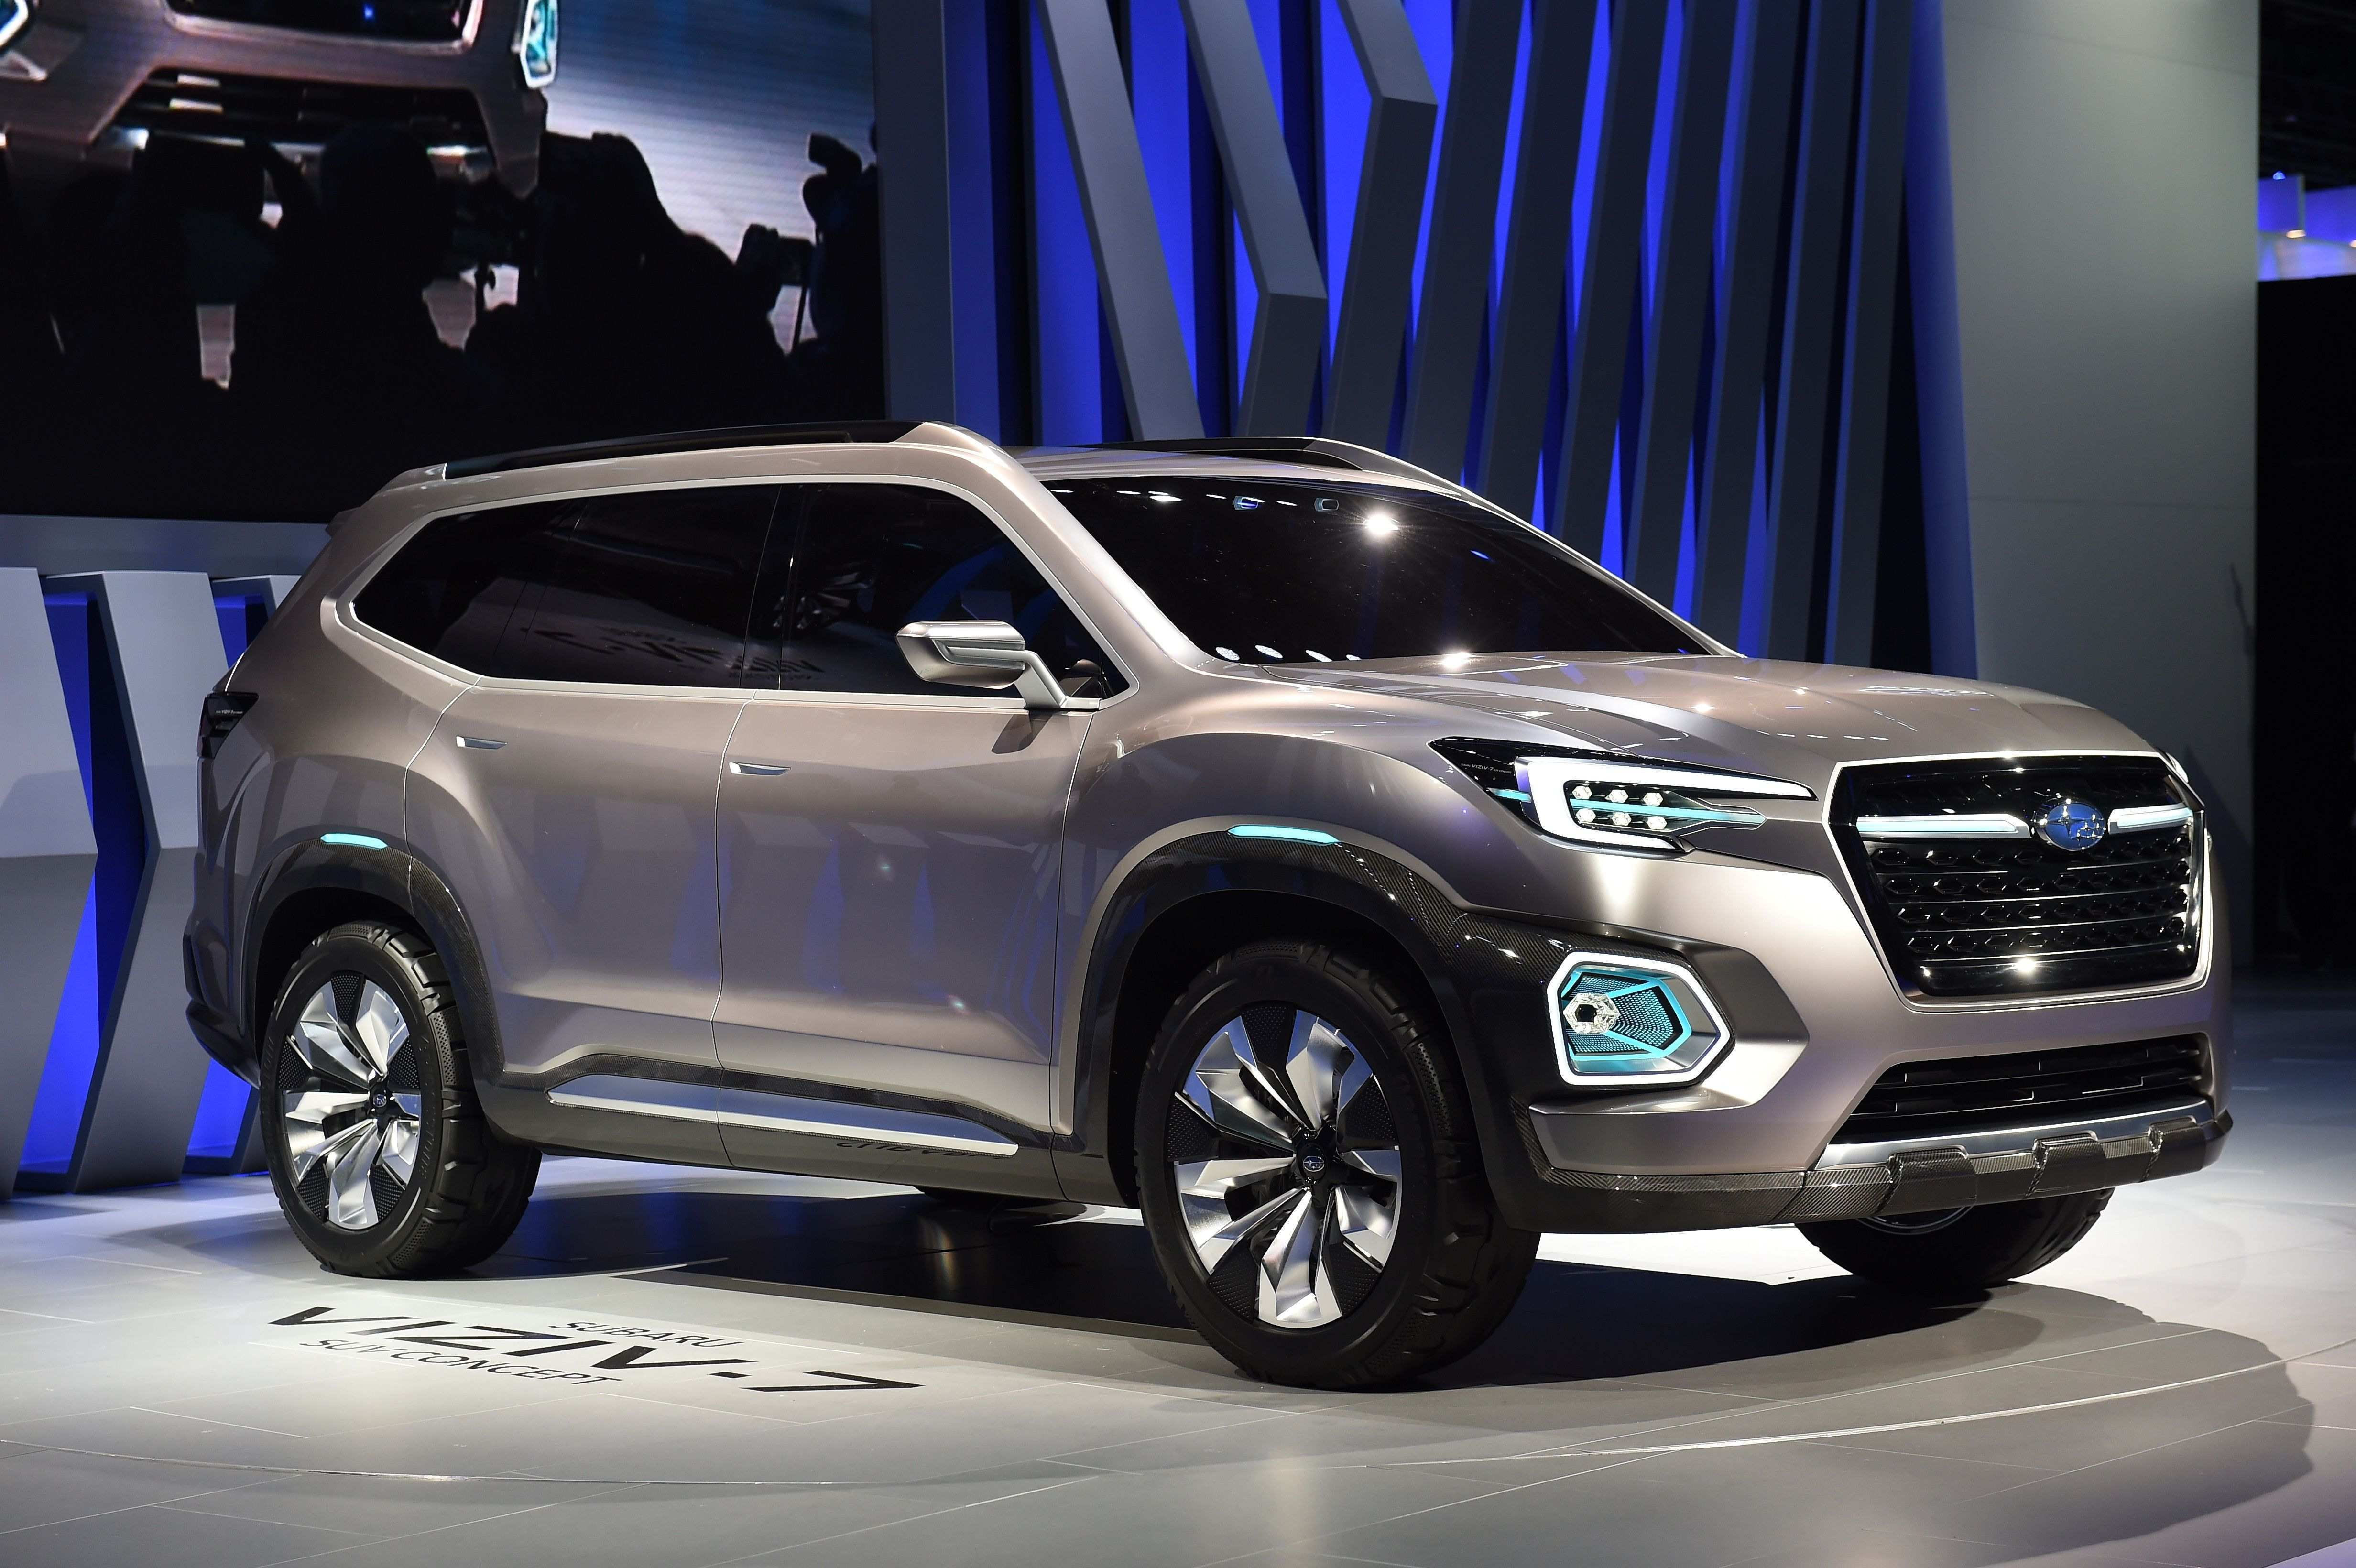 25 Concept of 2020 Subaru Forester Length Review for 2020 Subaru Forester Length